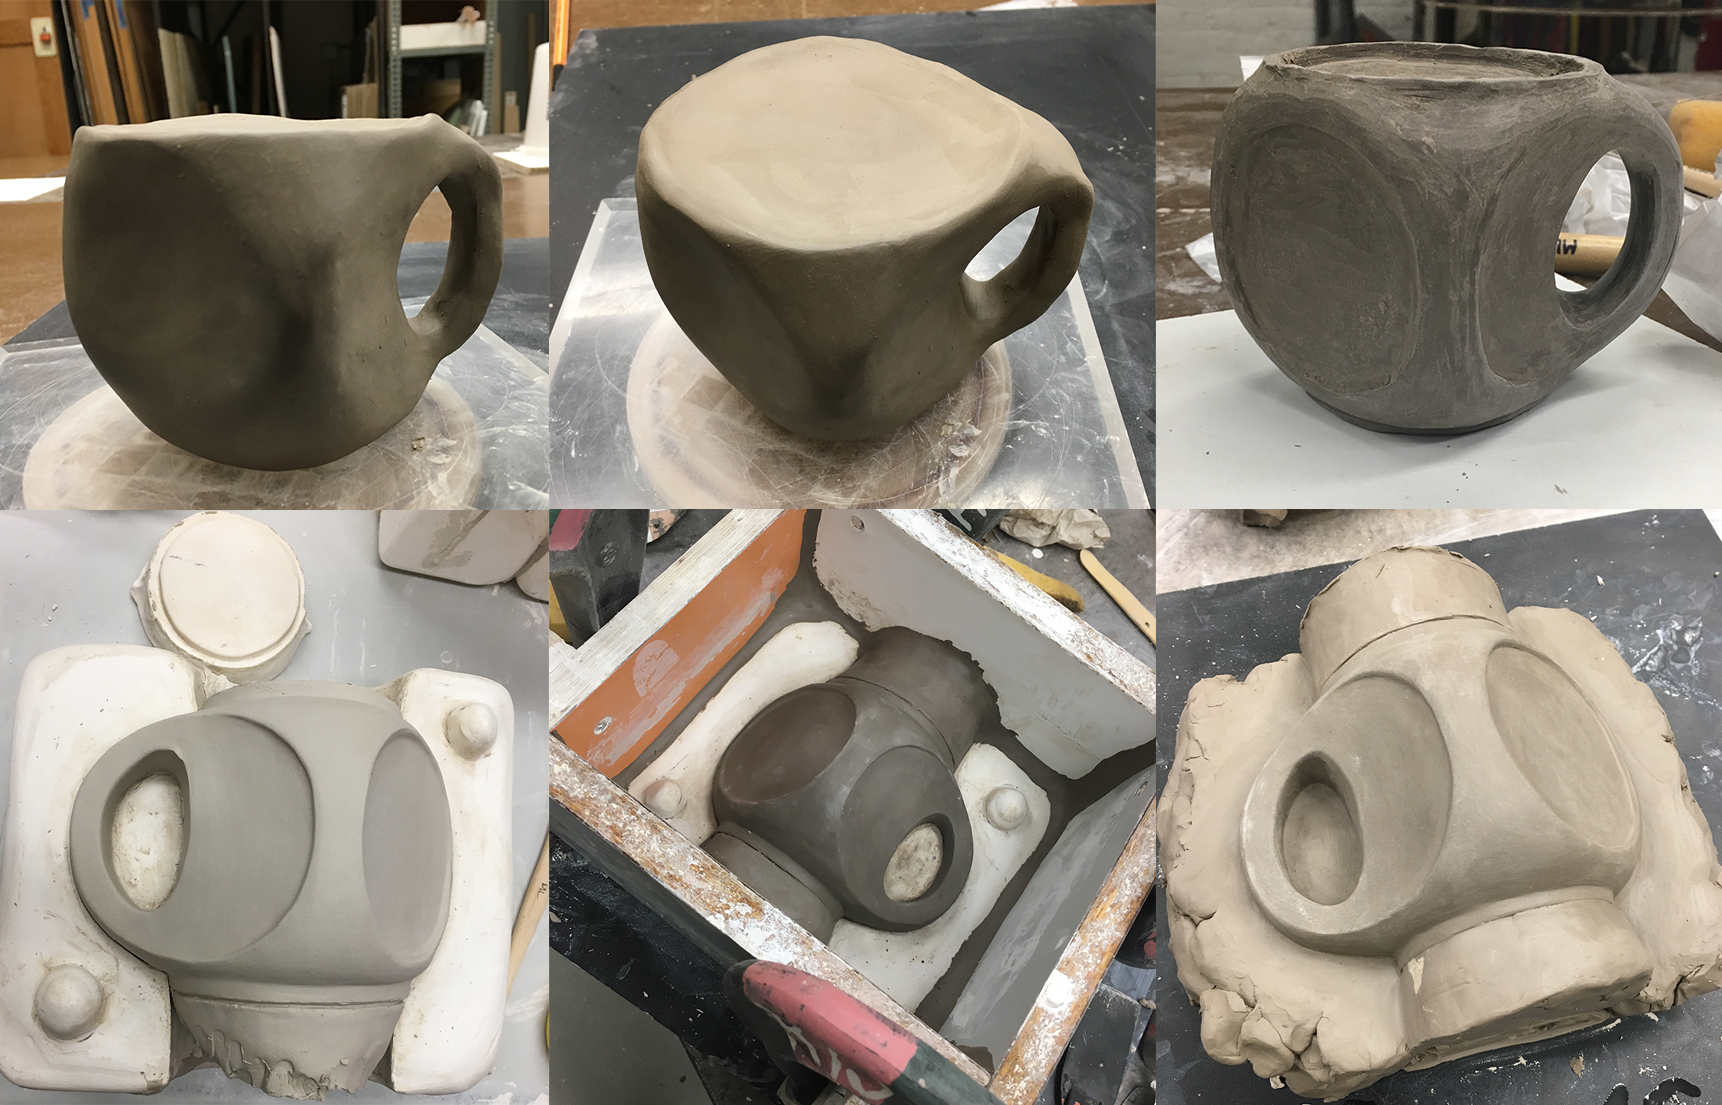 Clockwise from top left: Initial sketch model of cup concept, initial sketch model of cup, to-scale model of cup, preparing the scaled model for pouring the first half of the mold, setup for the second half mold pour, taking out the first slipcast cup from the mold